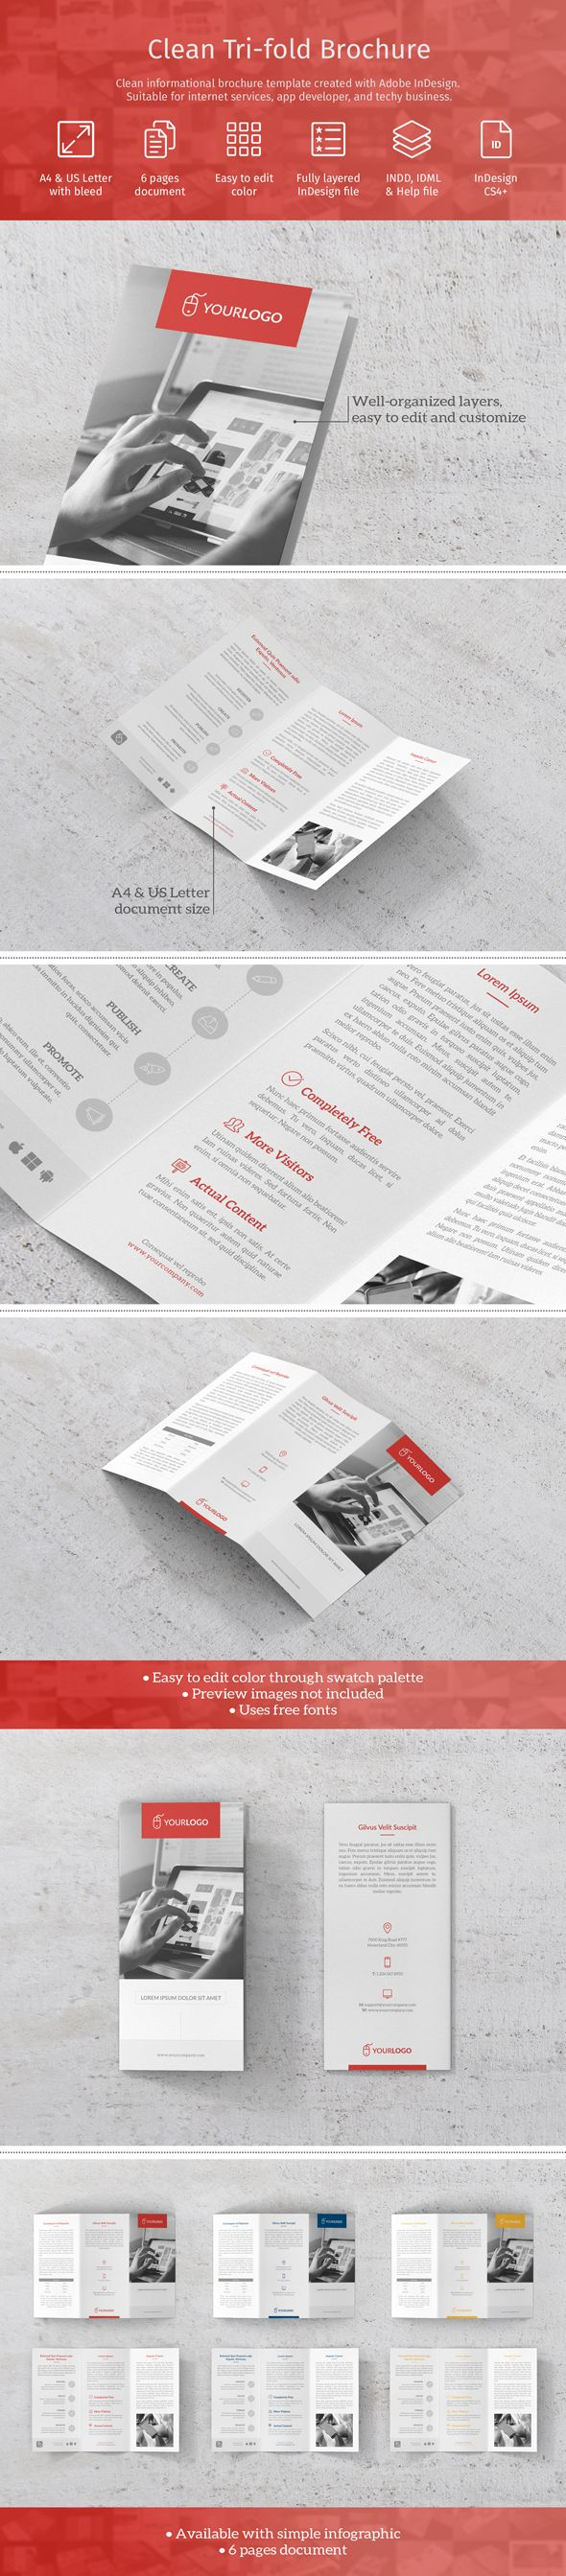 New arrival, Clean Trifold brochure template in A4 and US Letter size. Compatible with Adobe InDesign CS4 or higher. Available with FREE version. Get it now! https://www.behance.net/gallery/42926911/Clean-Trifold-Brochure . . .  #a4 #adobe #app #behance #bright #brochure #clean #colors #computer #creative #design #envato #flat #graphicriver #icons #indesign #informational #infographic #letter #modern #new #print #printdesign #retail #technology #template #trifold #usletter #work #workspace